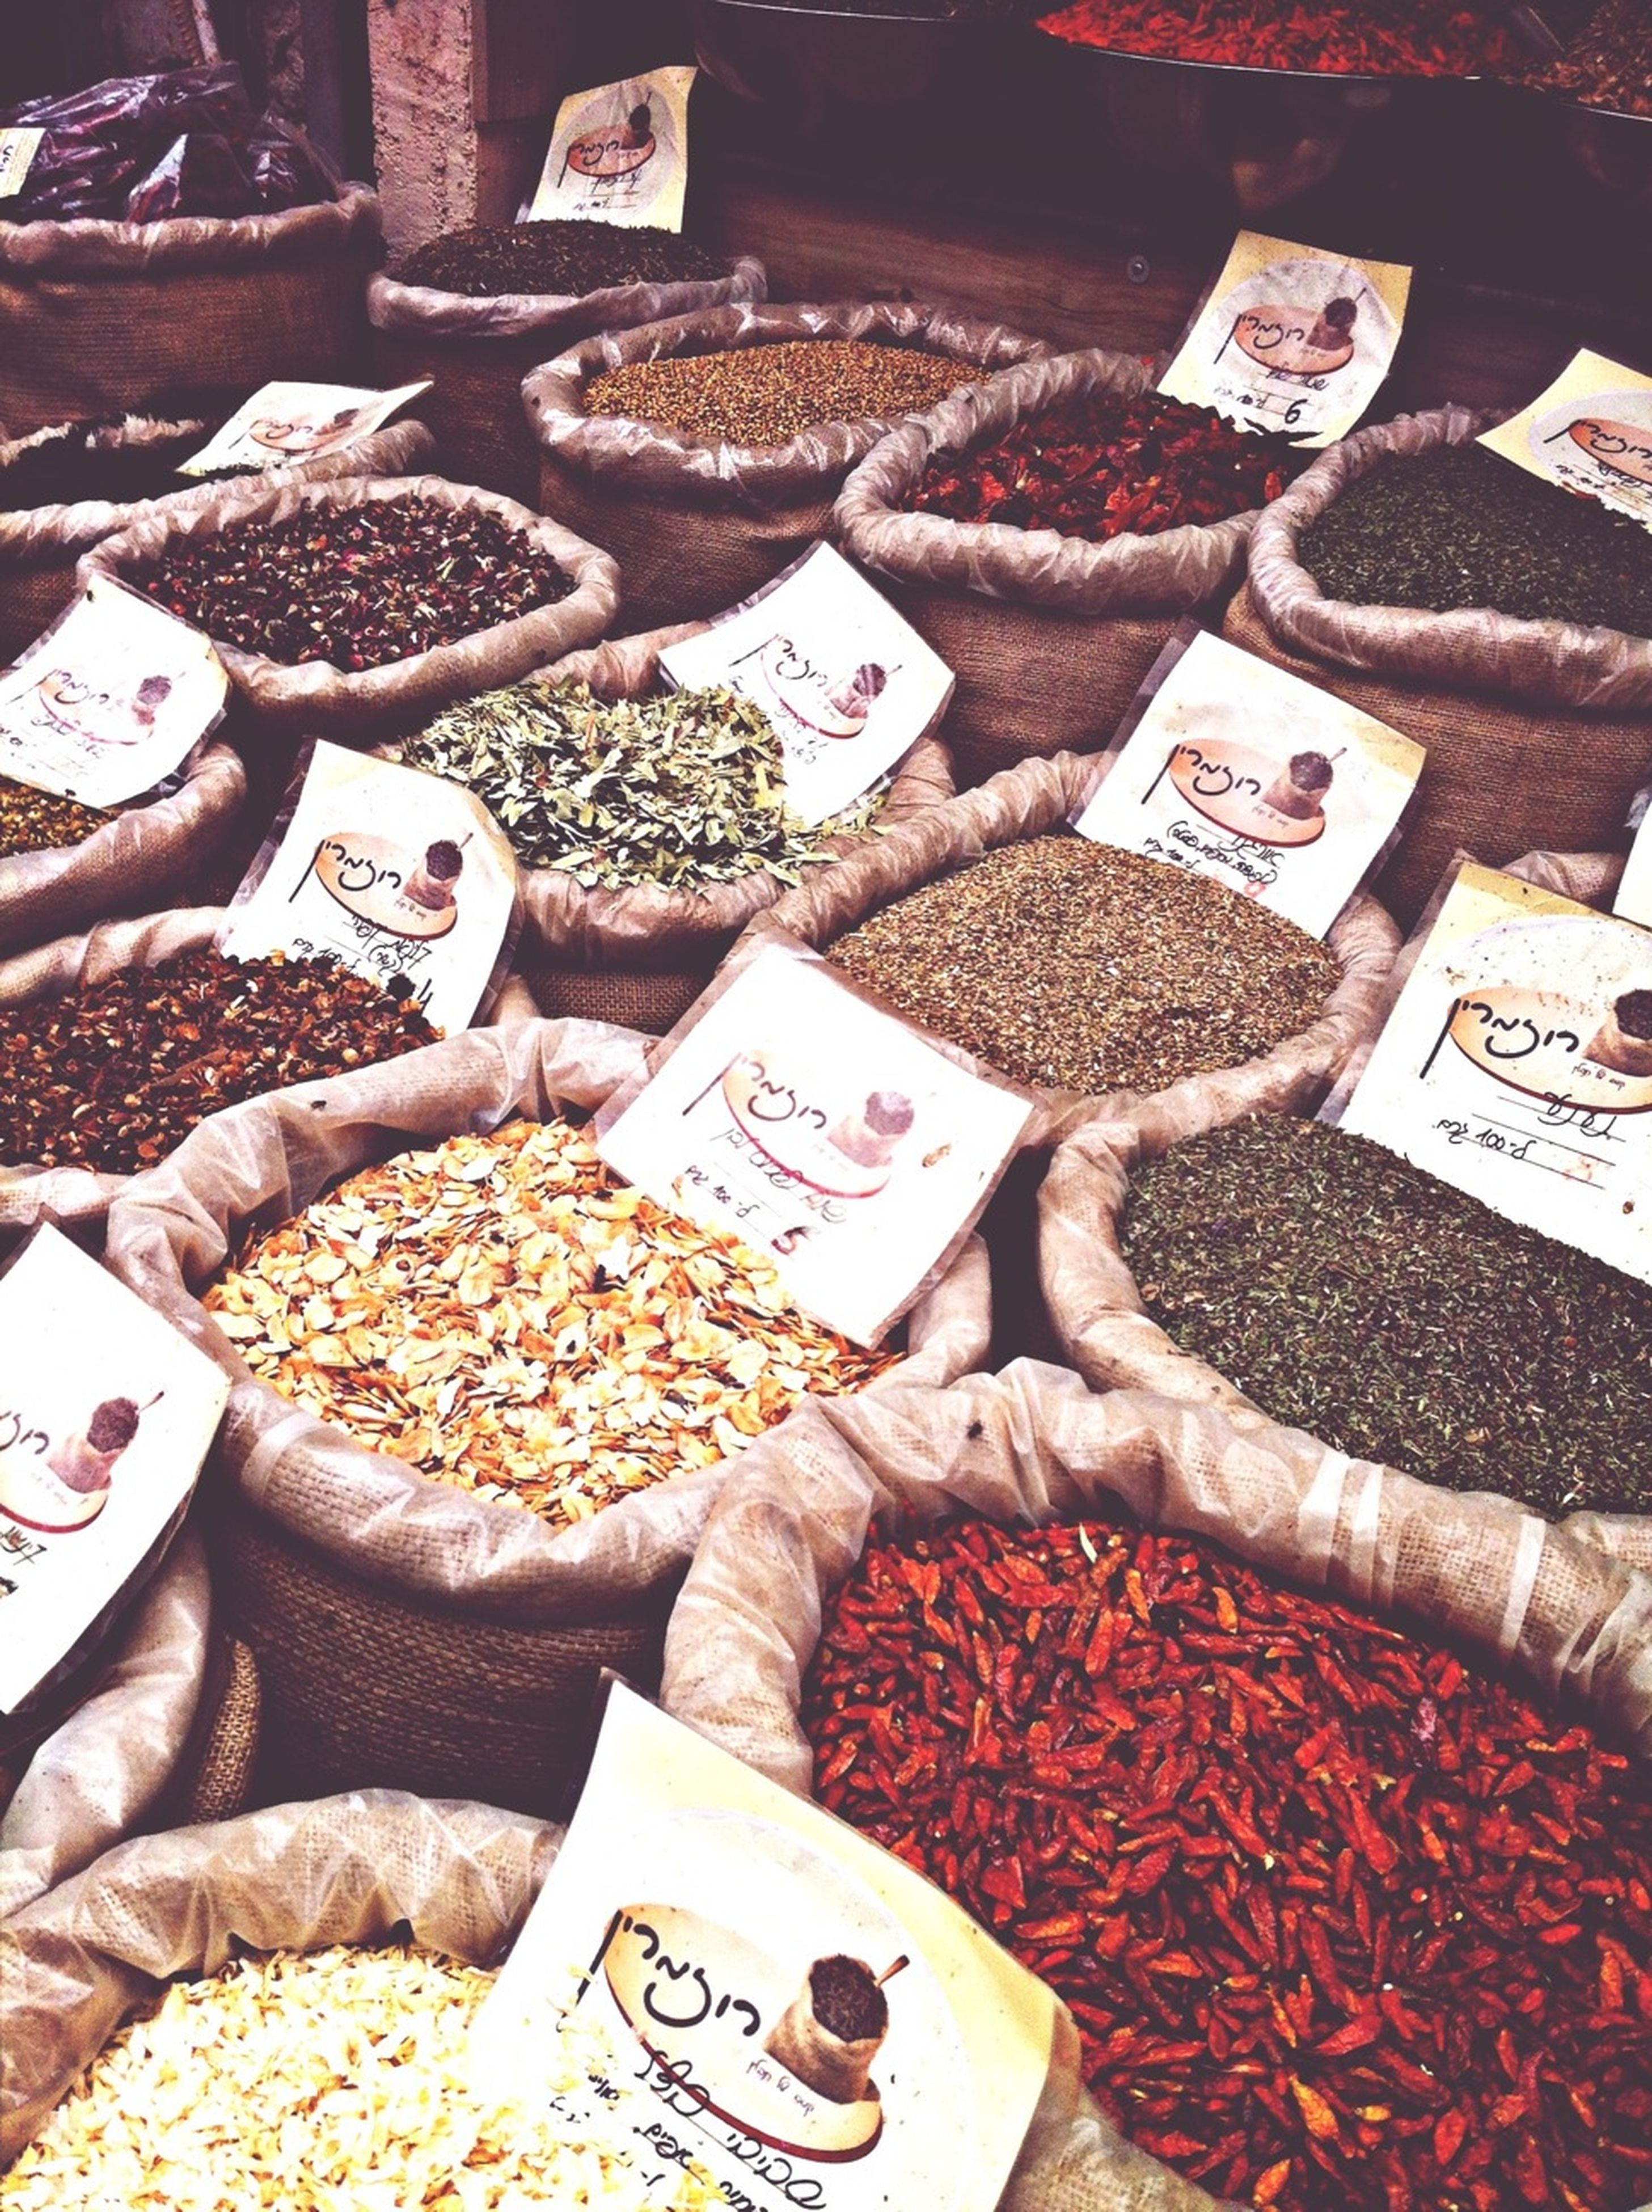 abundance, large group of objects, for sale, variation, retail, market, market stall, choice, high angle view, price tag, text, arrangement, food and drink, communication, stack, food, small business, collection, freshness